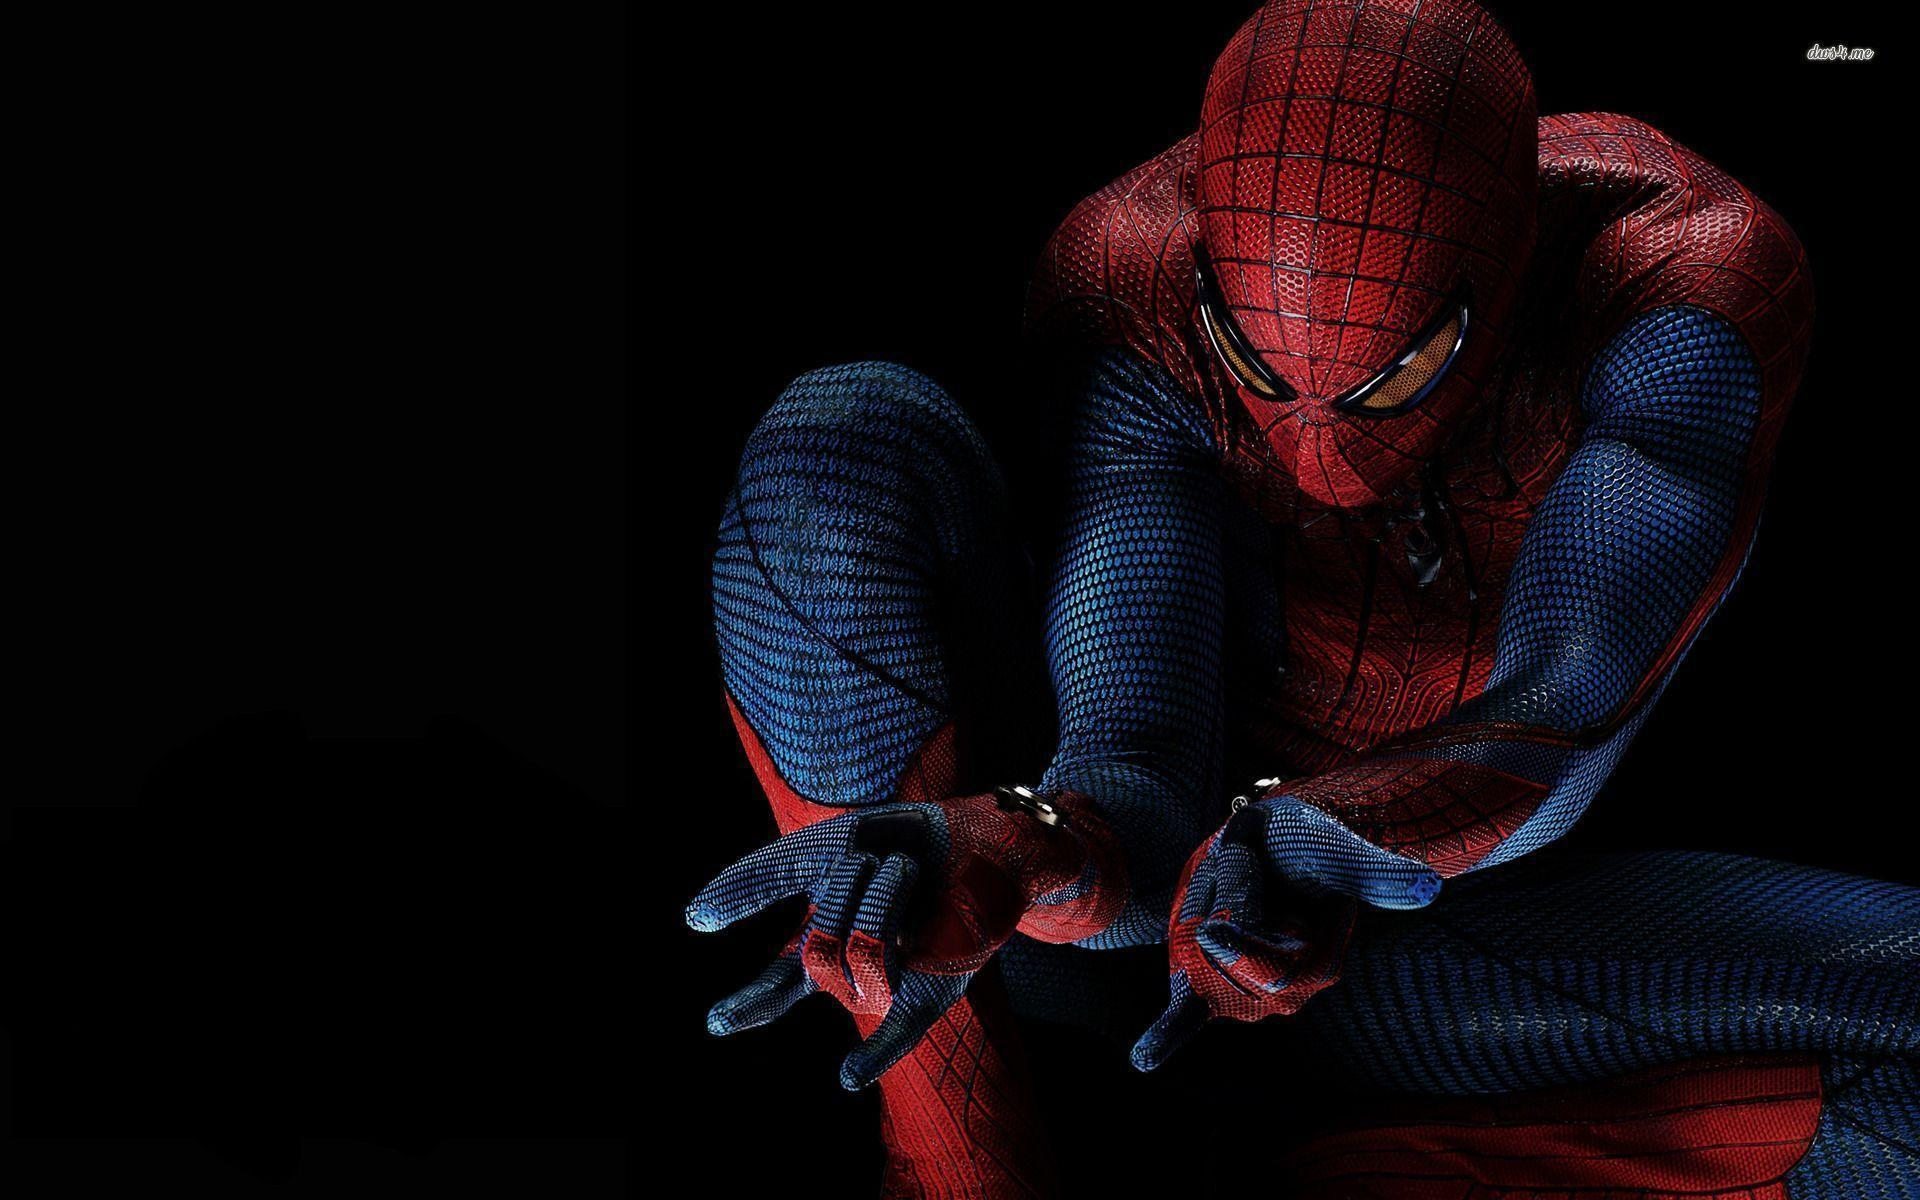 the-amazing-spider-man-2-wallpaper-1366x768-7.jpg (JPEG Image ...